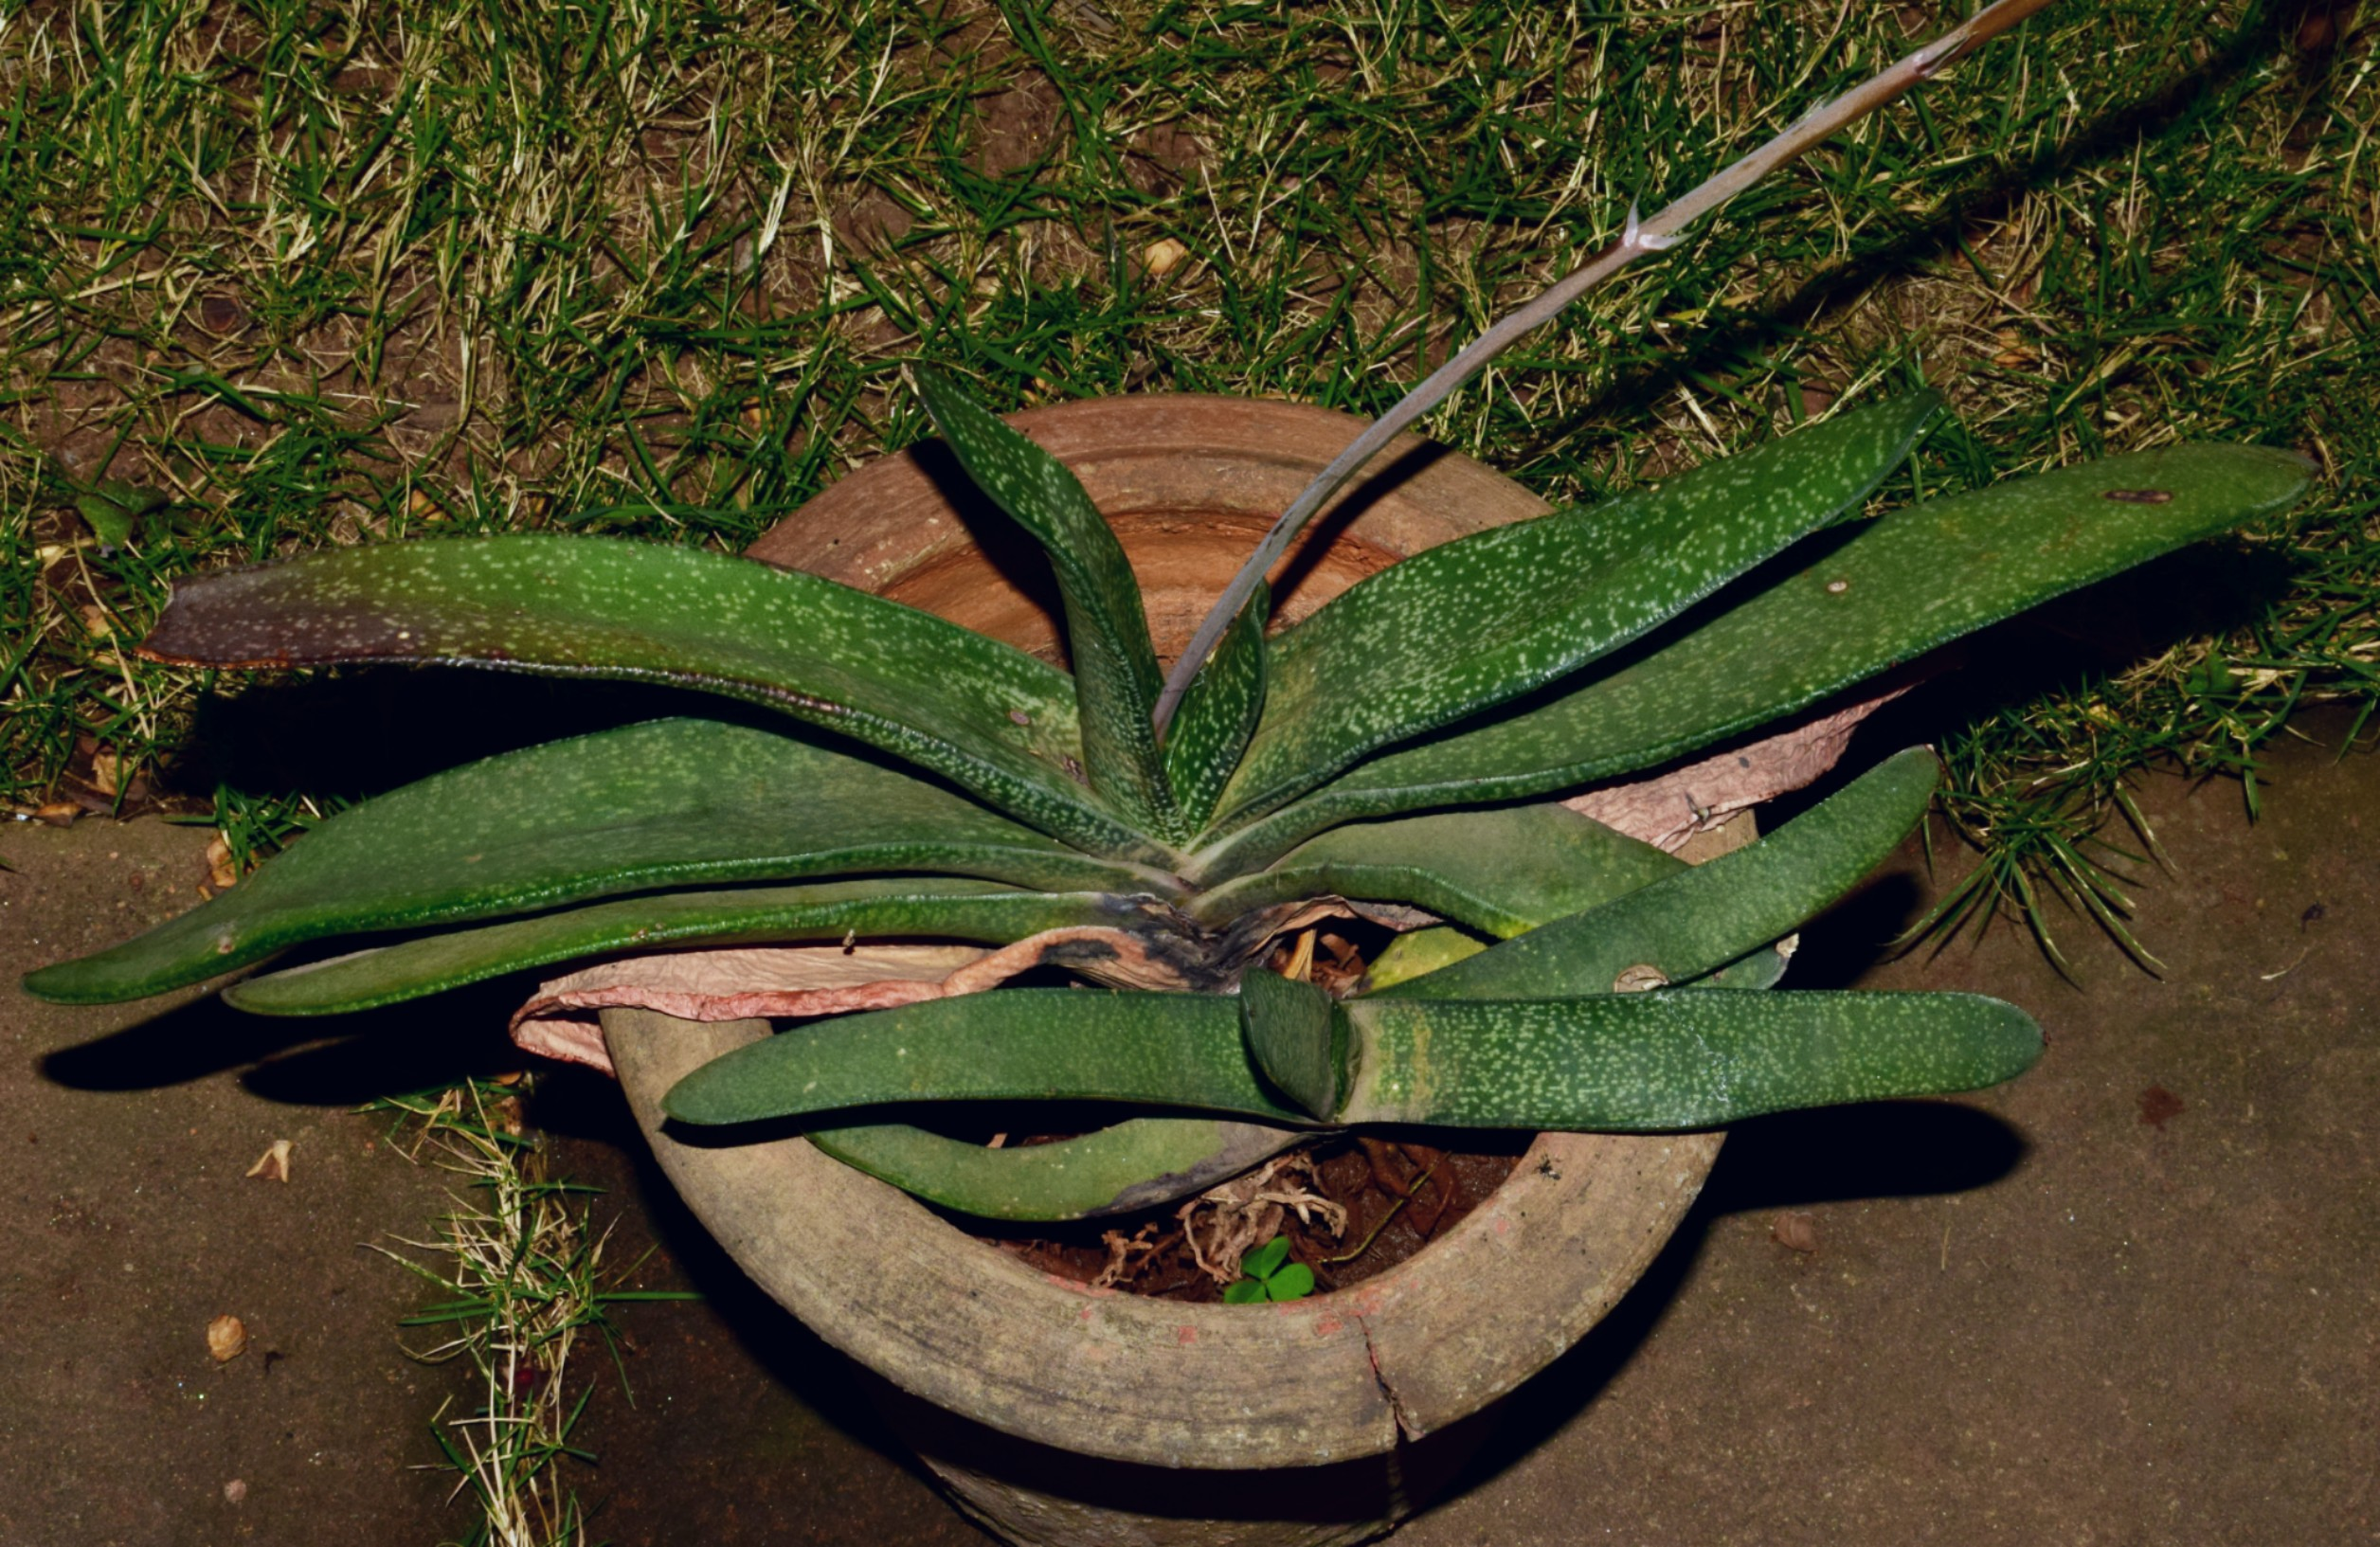 /wp-content/uploads/2020/10/Gasteria%20planted%20in%20pot.jpg